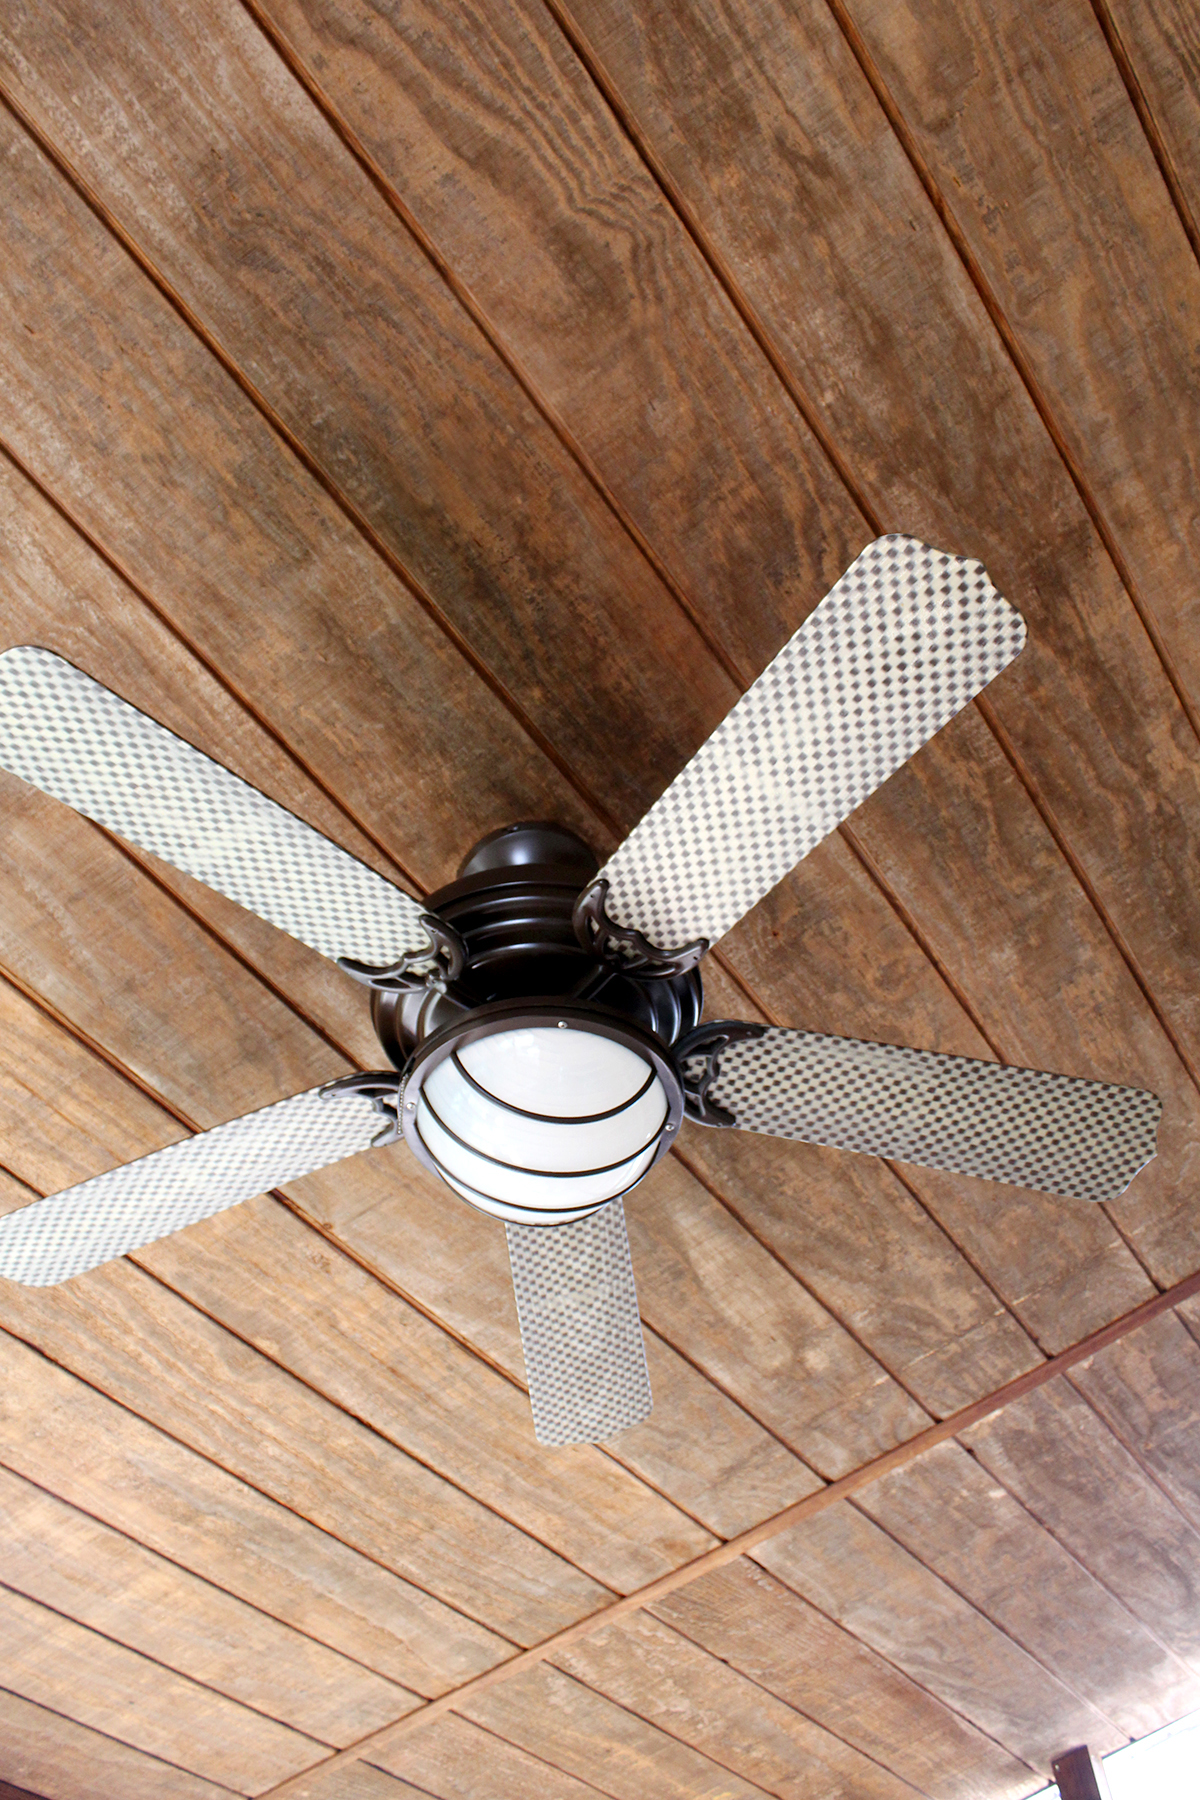 paint a ceiling fan for under $25 #upcycle #DIY #ceilingfan #spraypaint